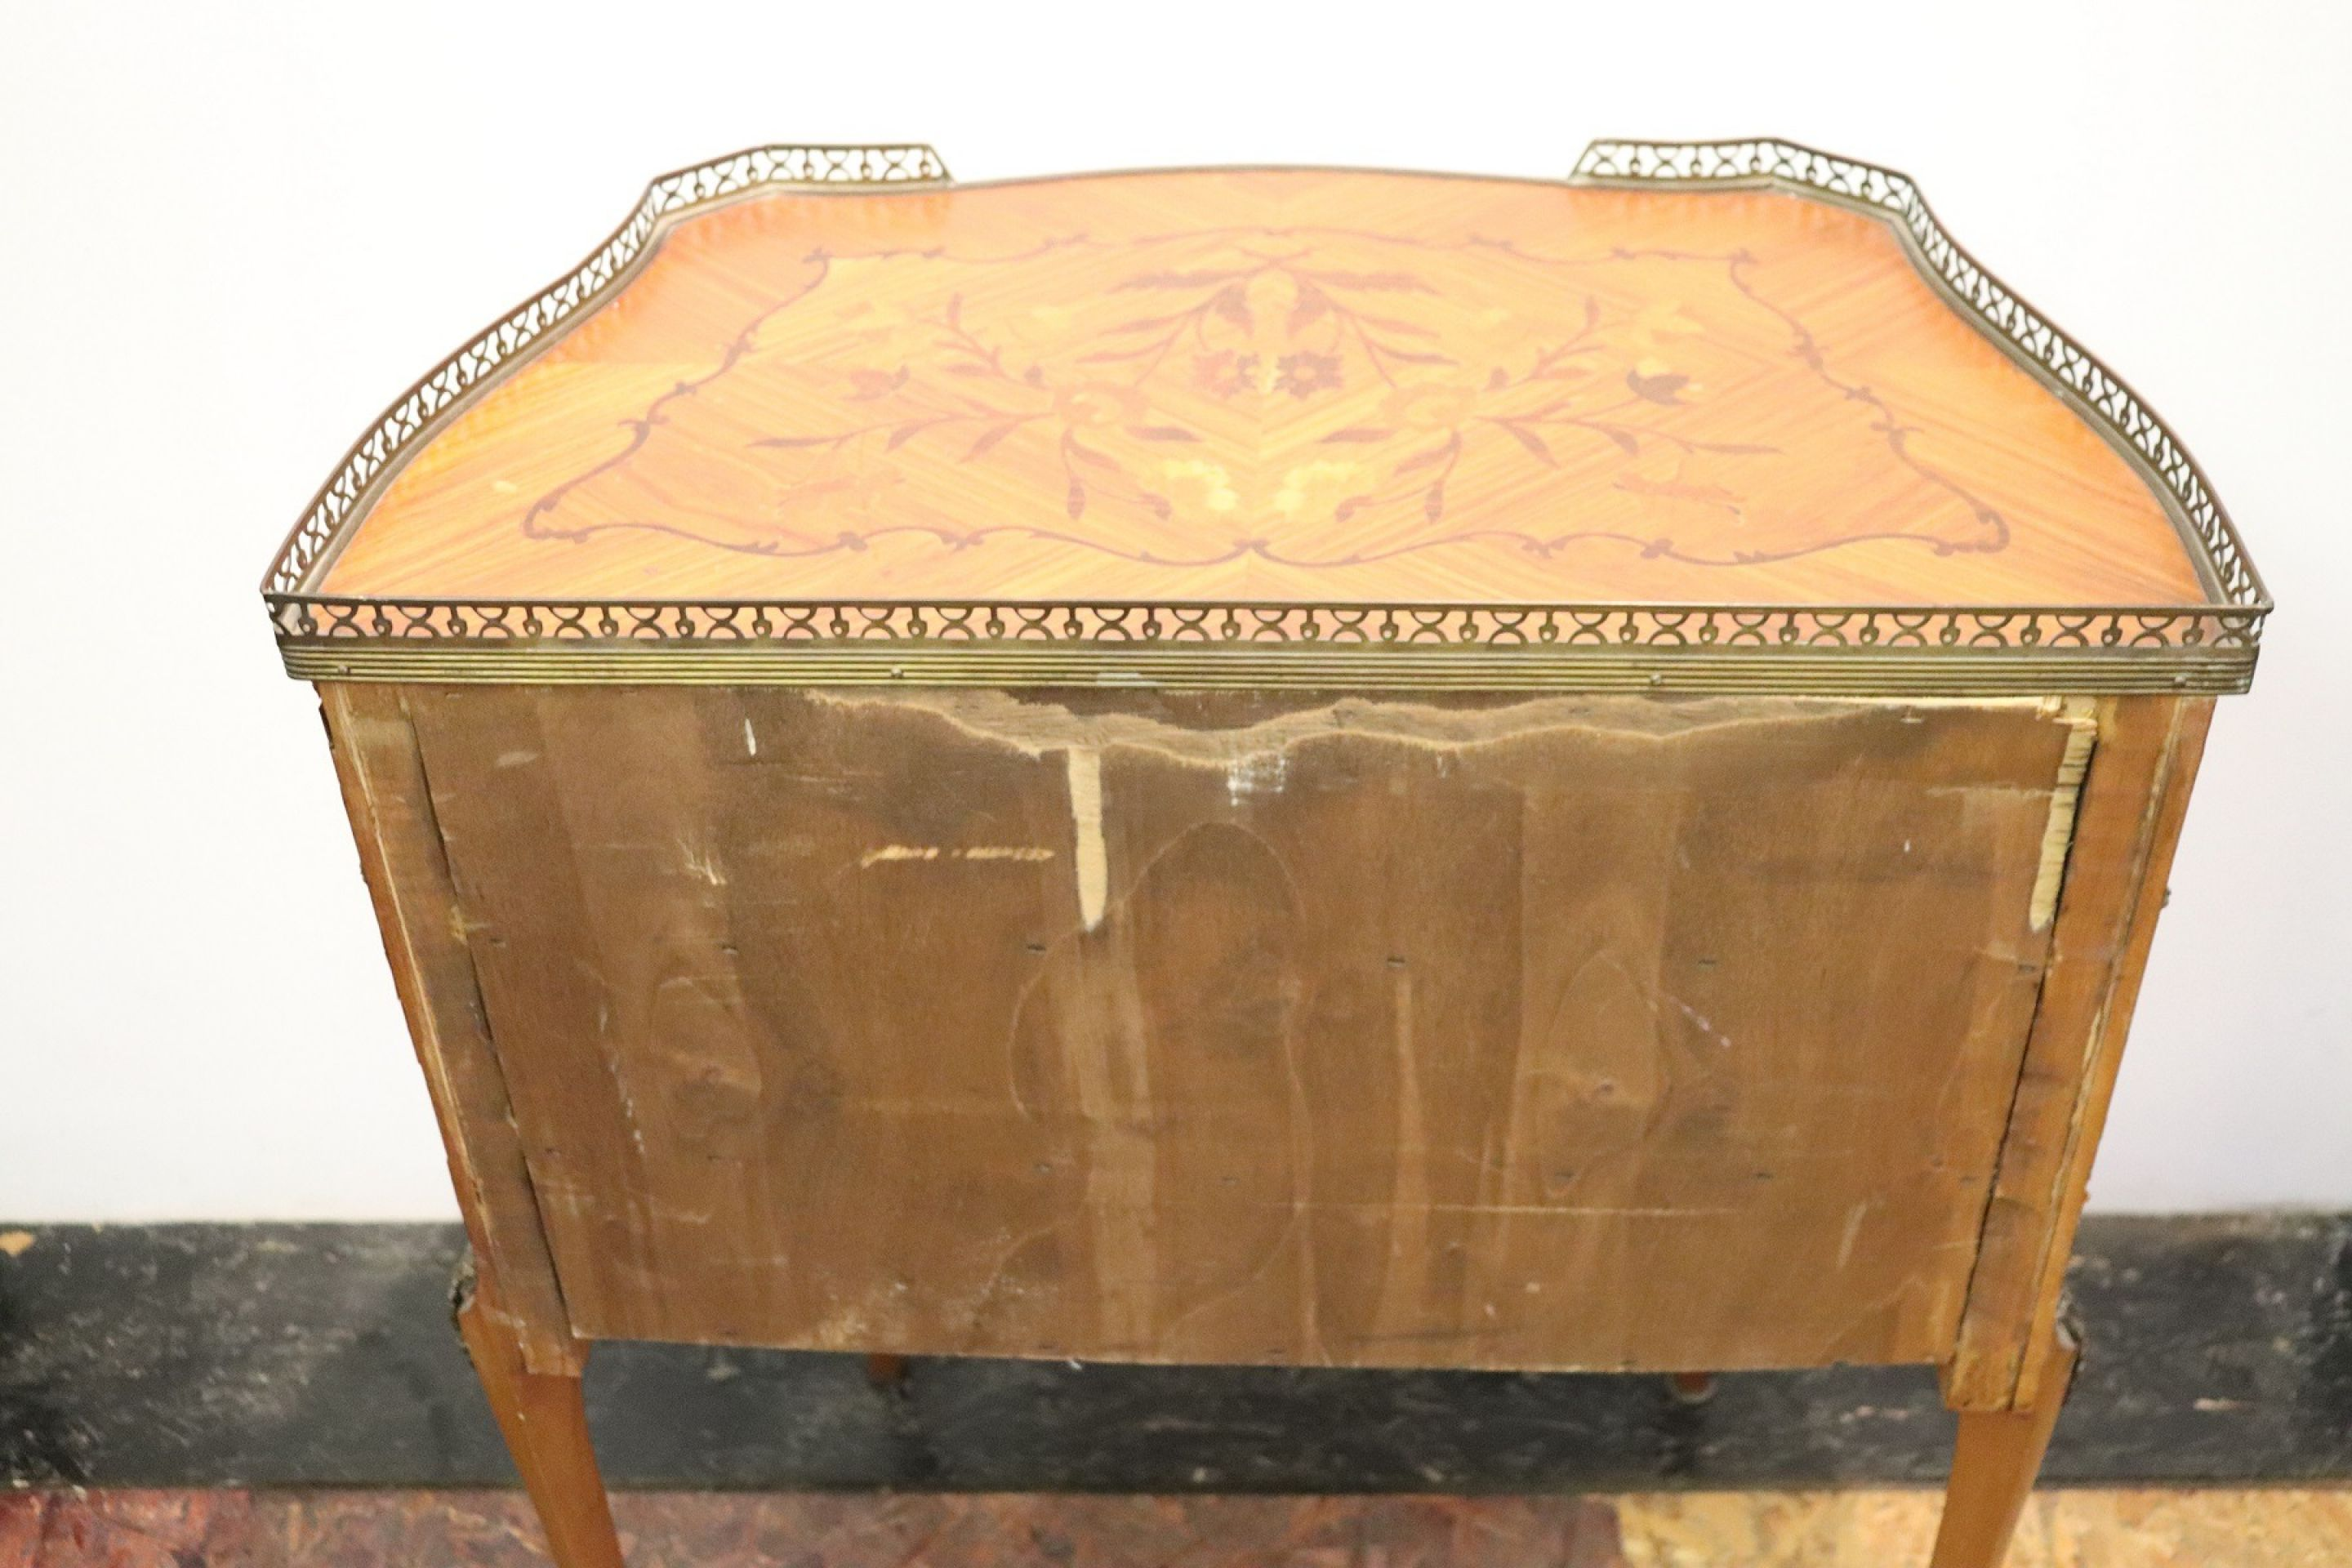 20th Century Italian Louis XV Style Inlay Wood and Golden Bronzes Side Table